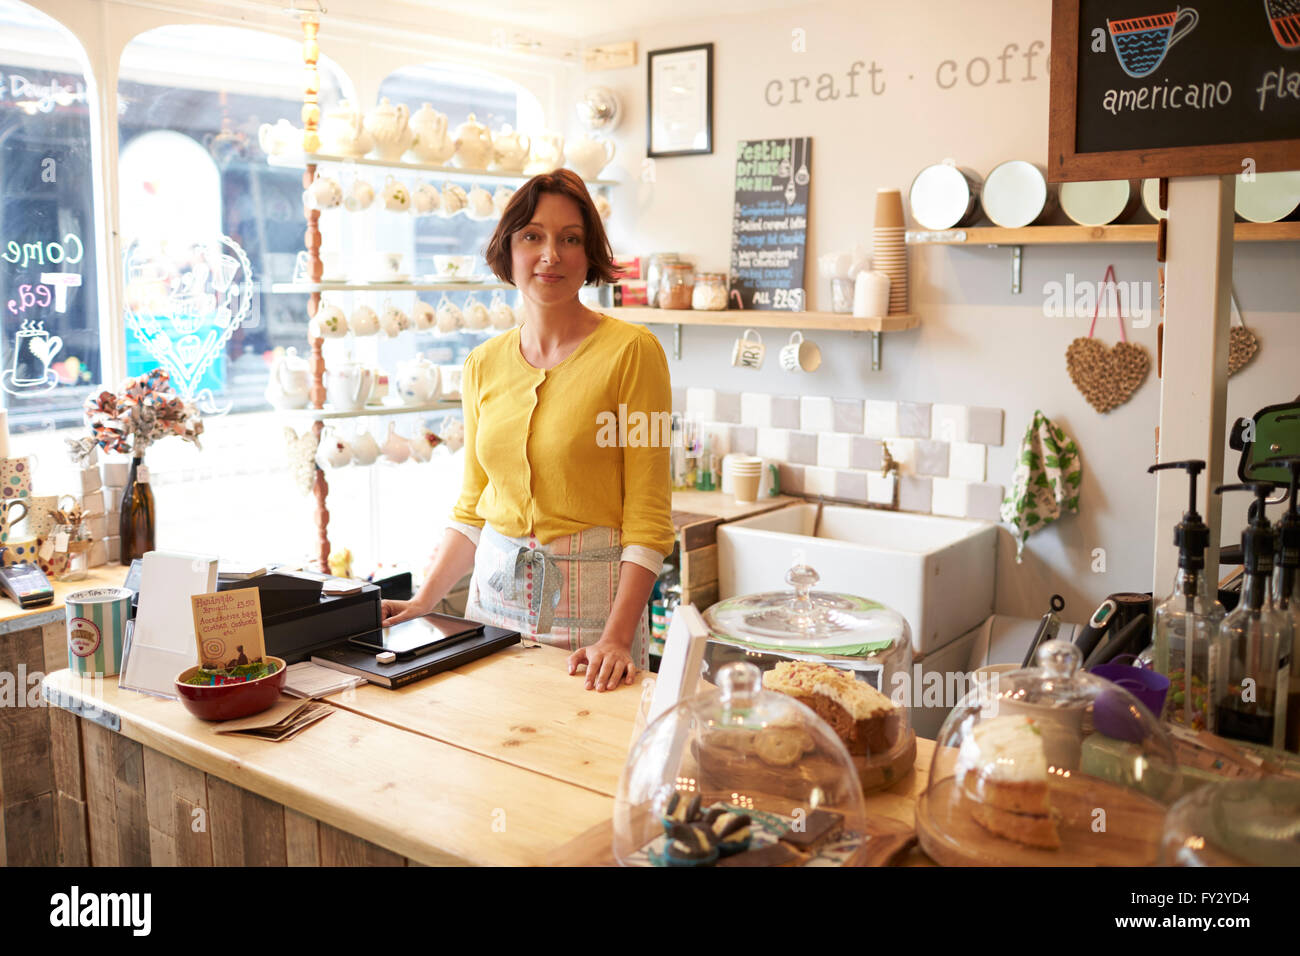 Portrait of Woman Running Café Photo Stock